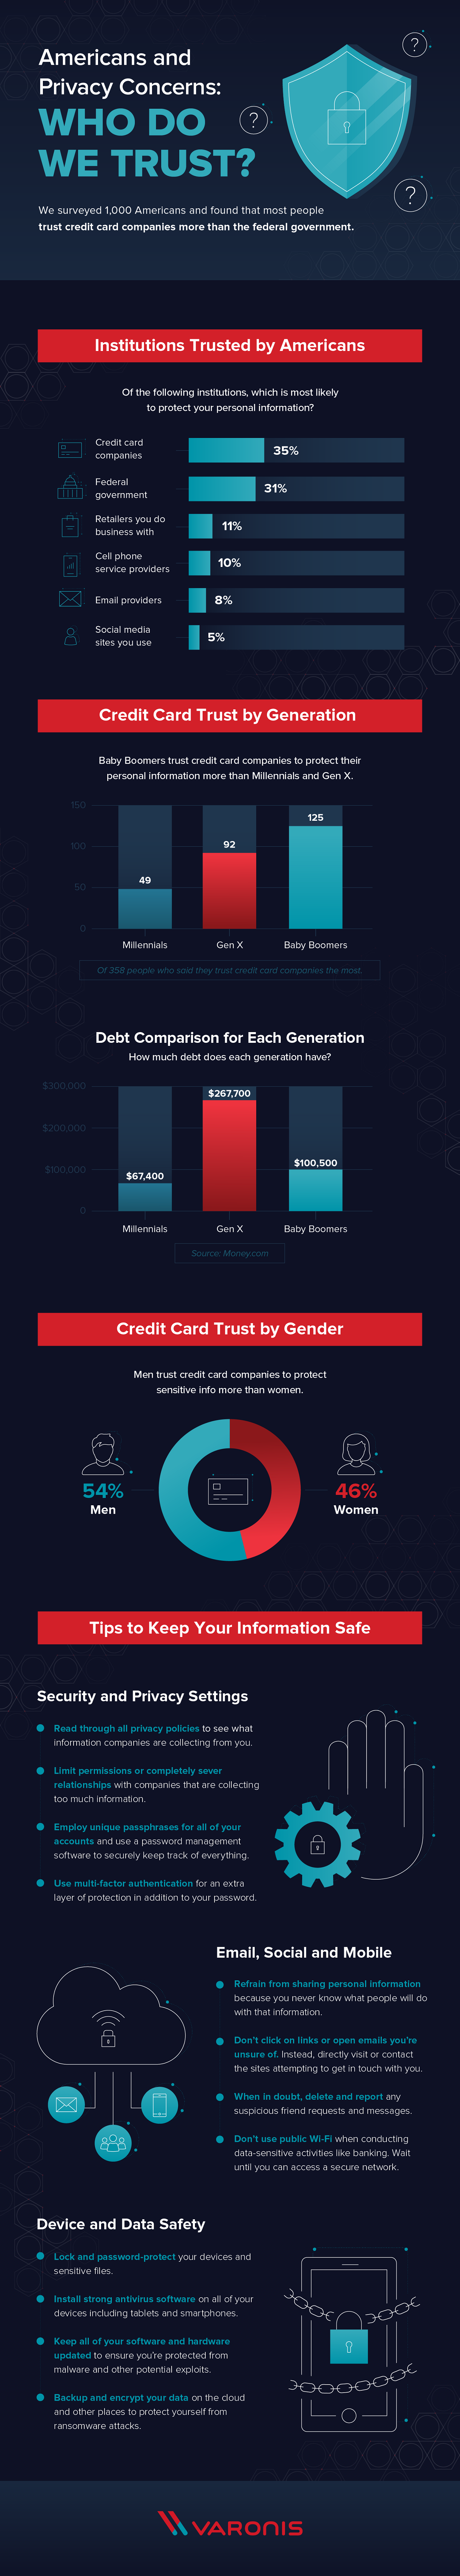 Americans and Privacy Concerns: Who Do We Trust? #infographic